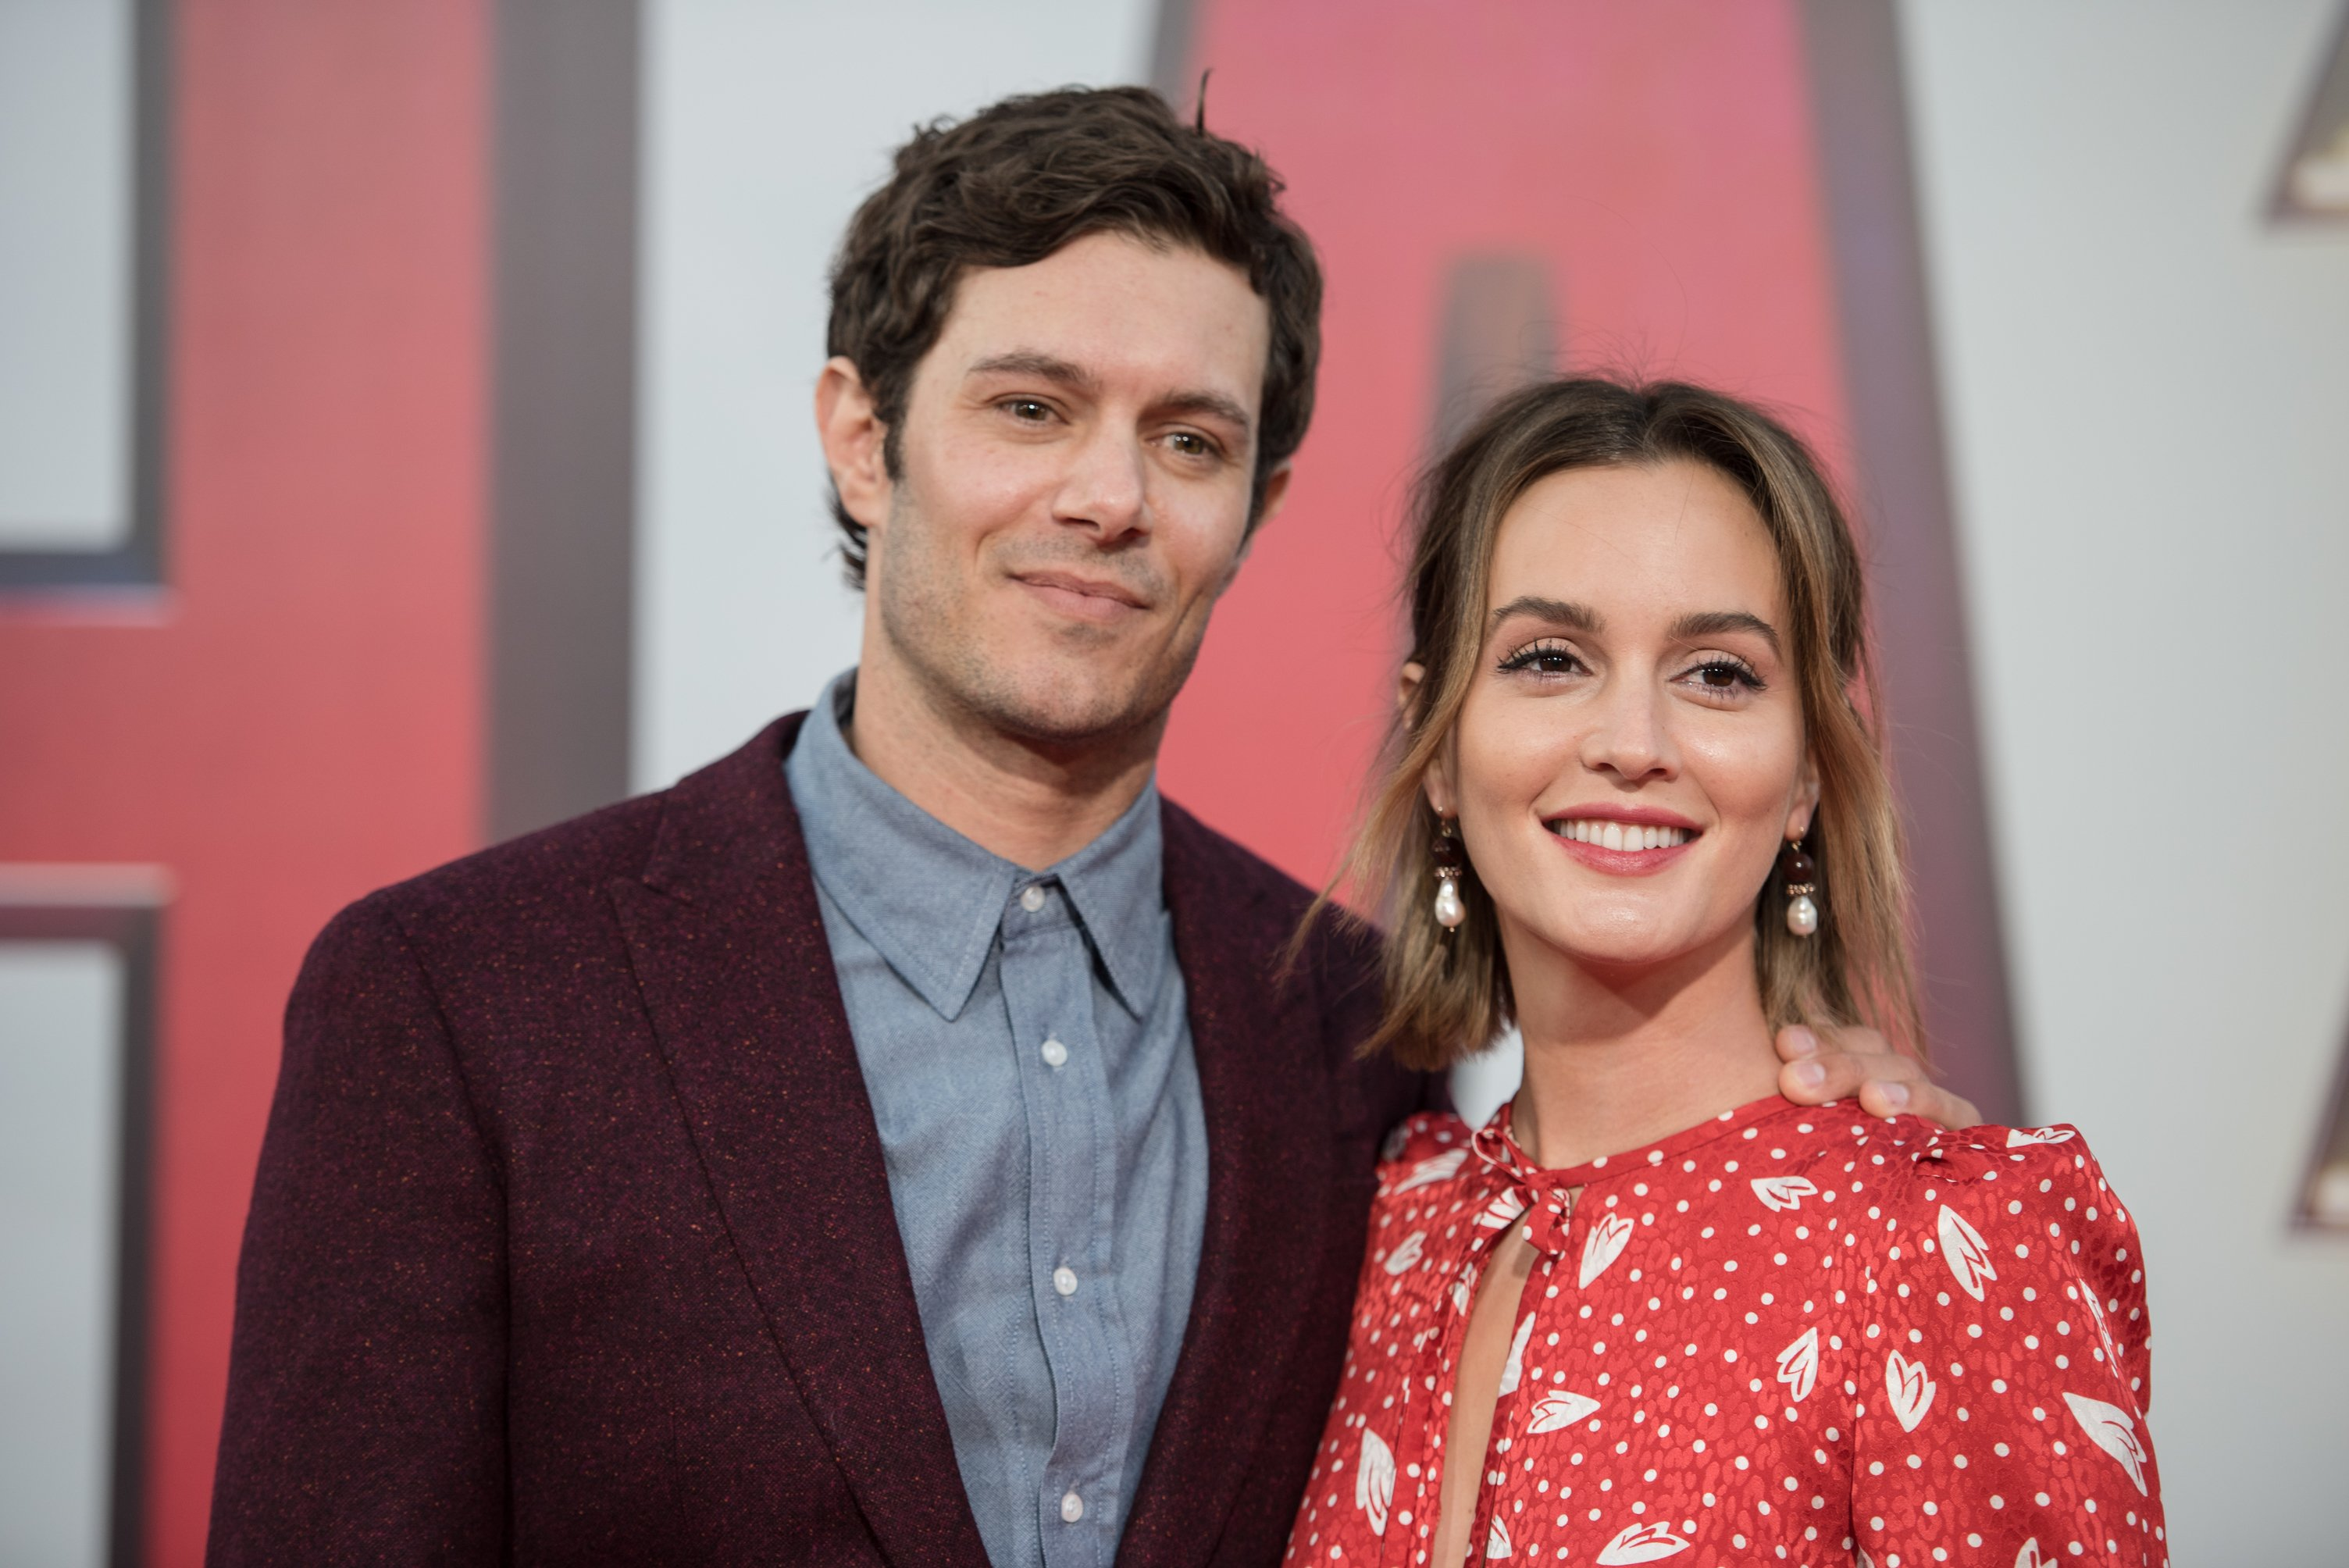 """Adam Brody and Leighton Meester arrive at Warner Bros. Pictures and New Line Cinema's world premiere of """"SHAZAM!"""" at TCL Chinese Theatre on March 28, 2019 in Hollywood, California. 